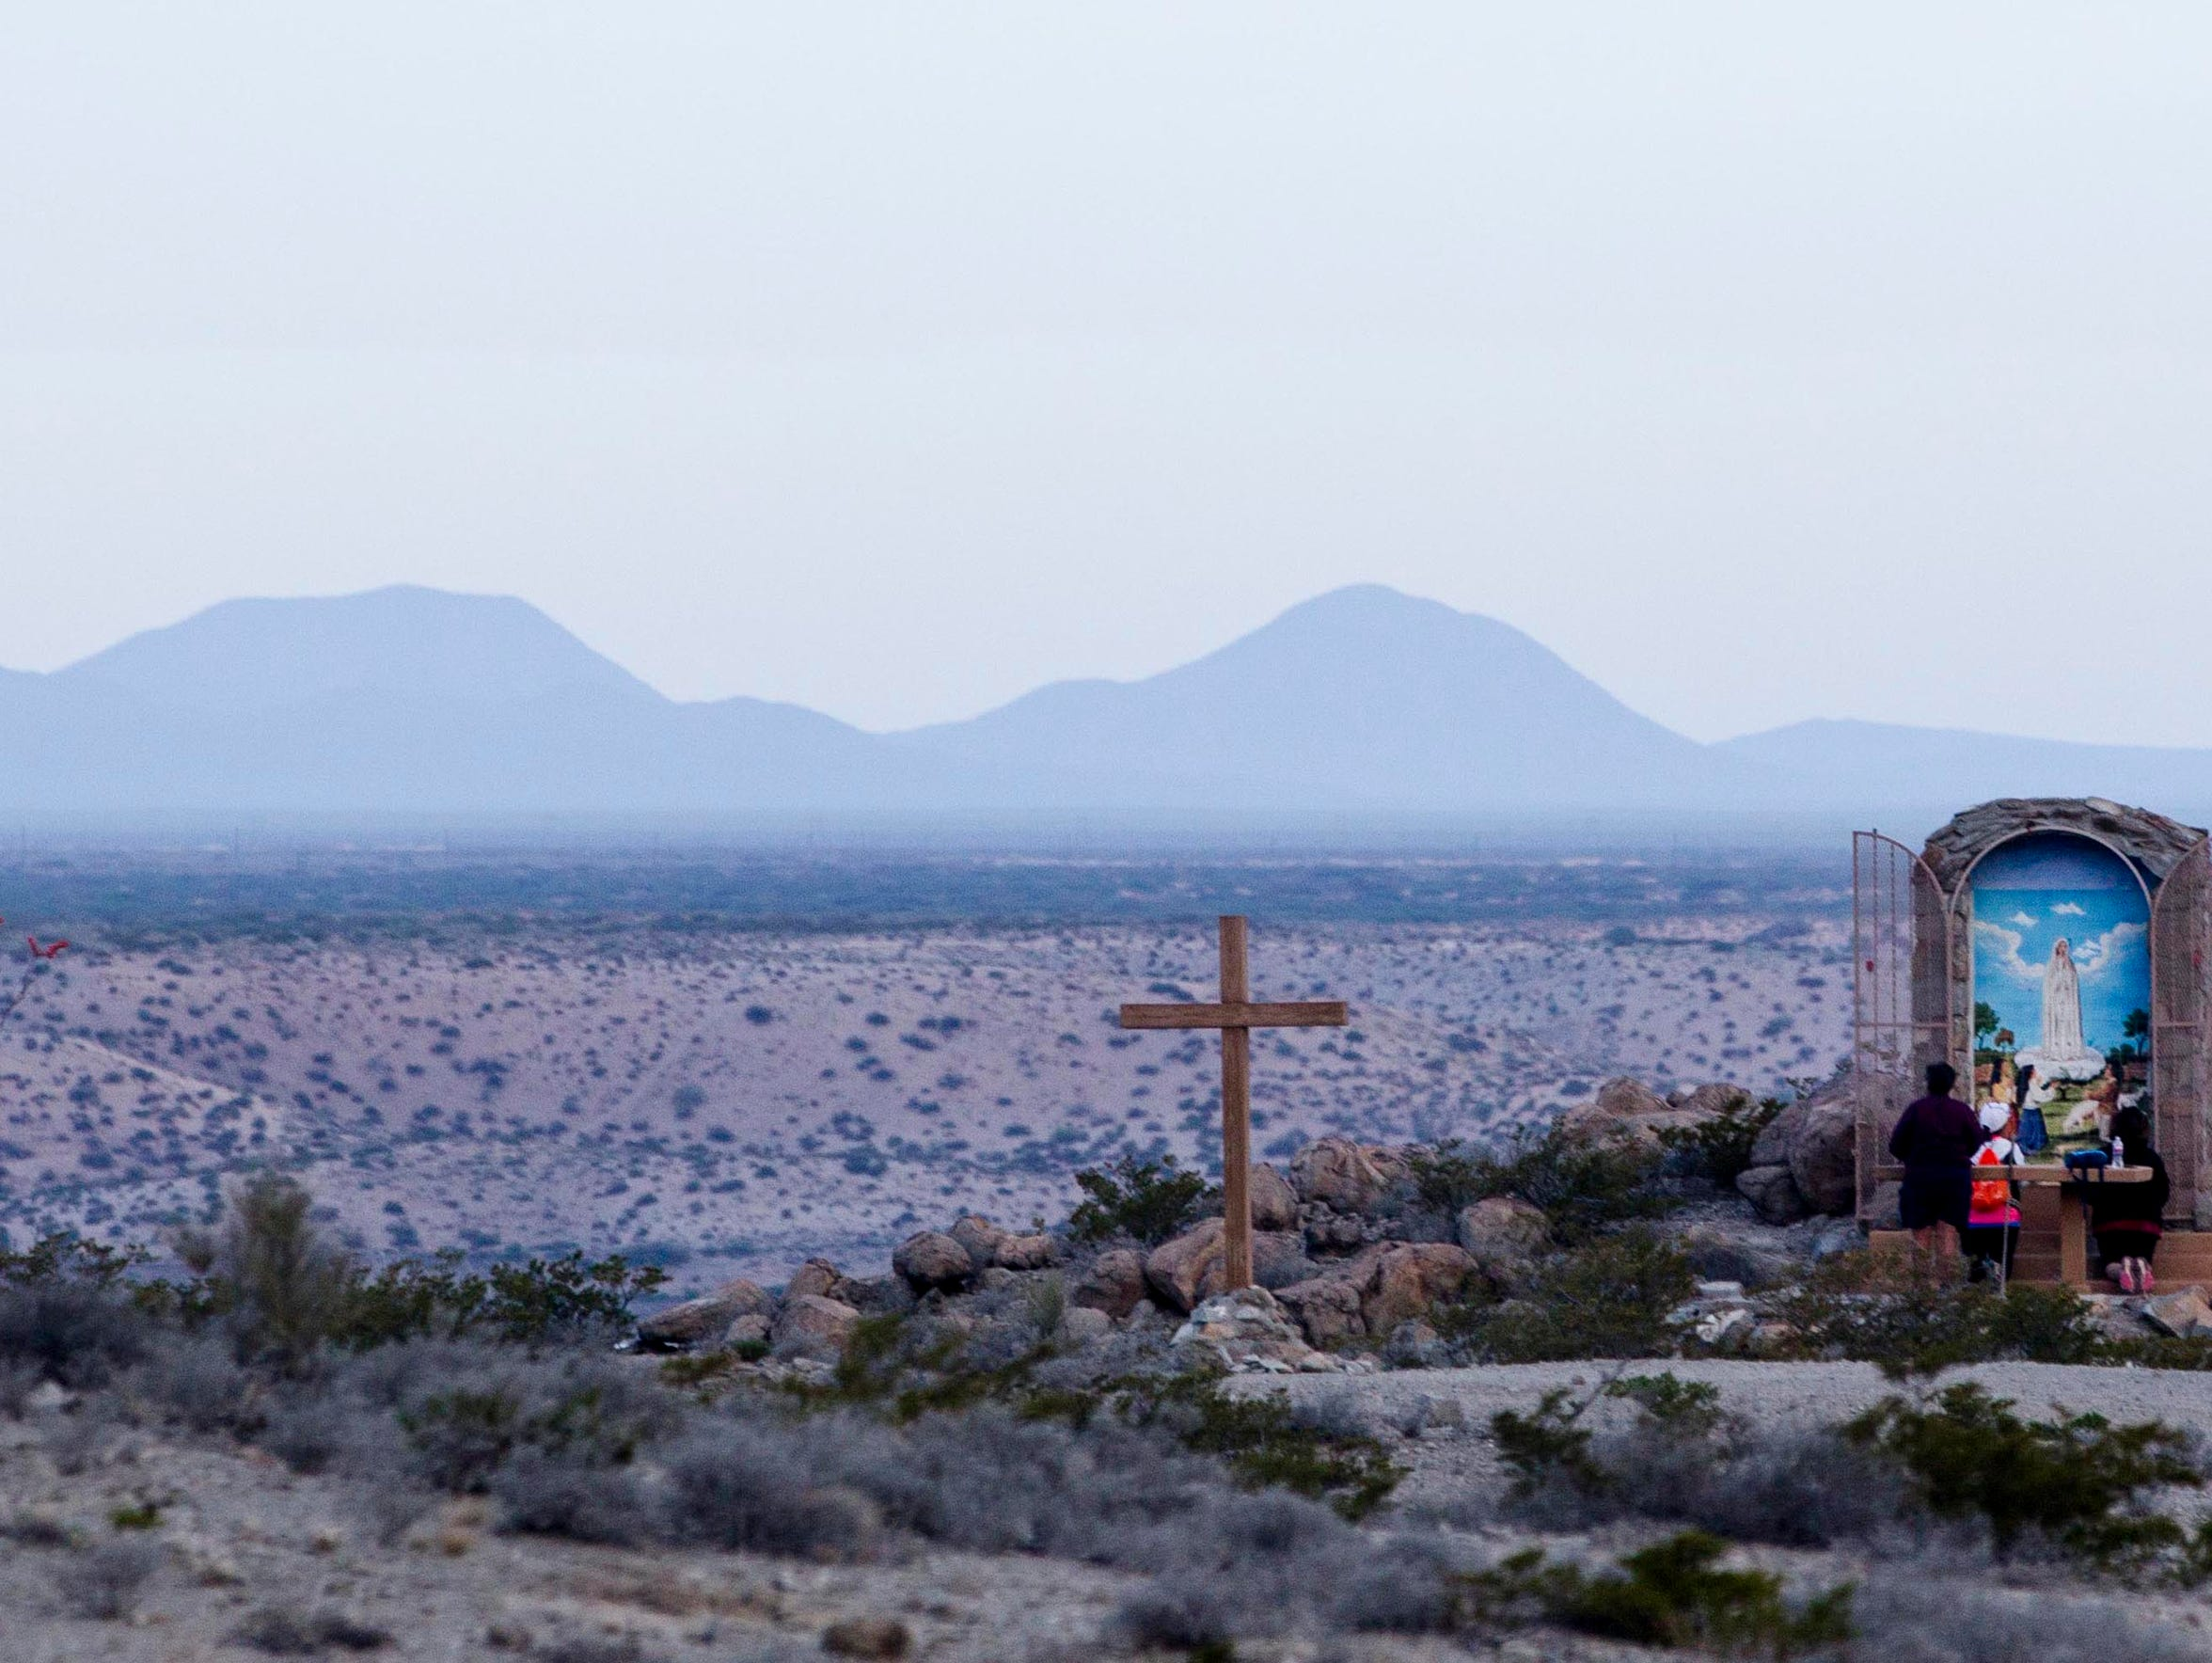 Catholic pilgrims hike up Mount Cristo Rey to pray